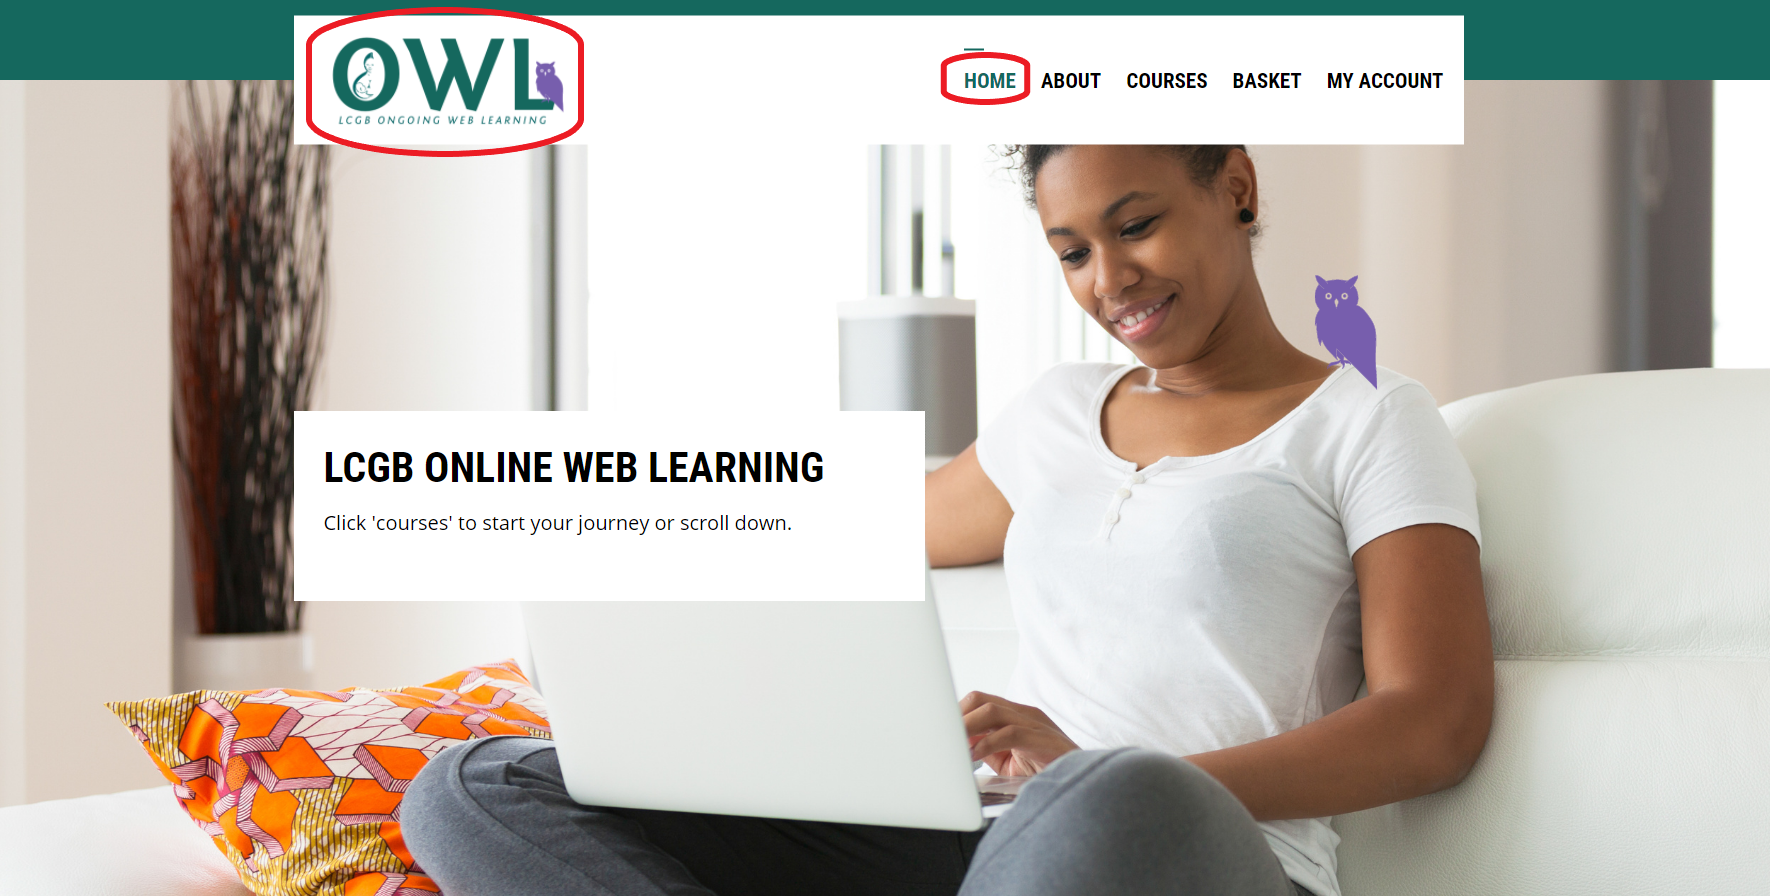 Home Page with OWL logo circled at top left